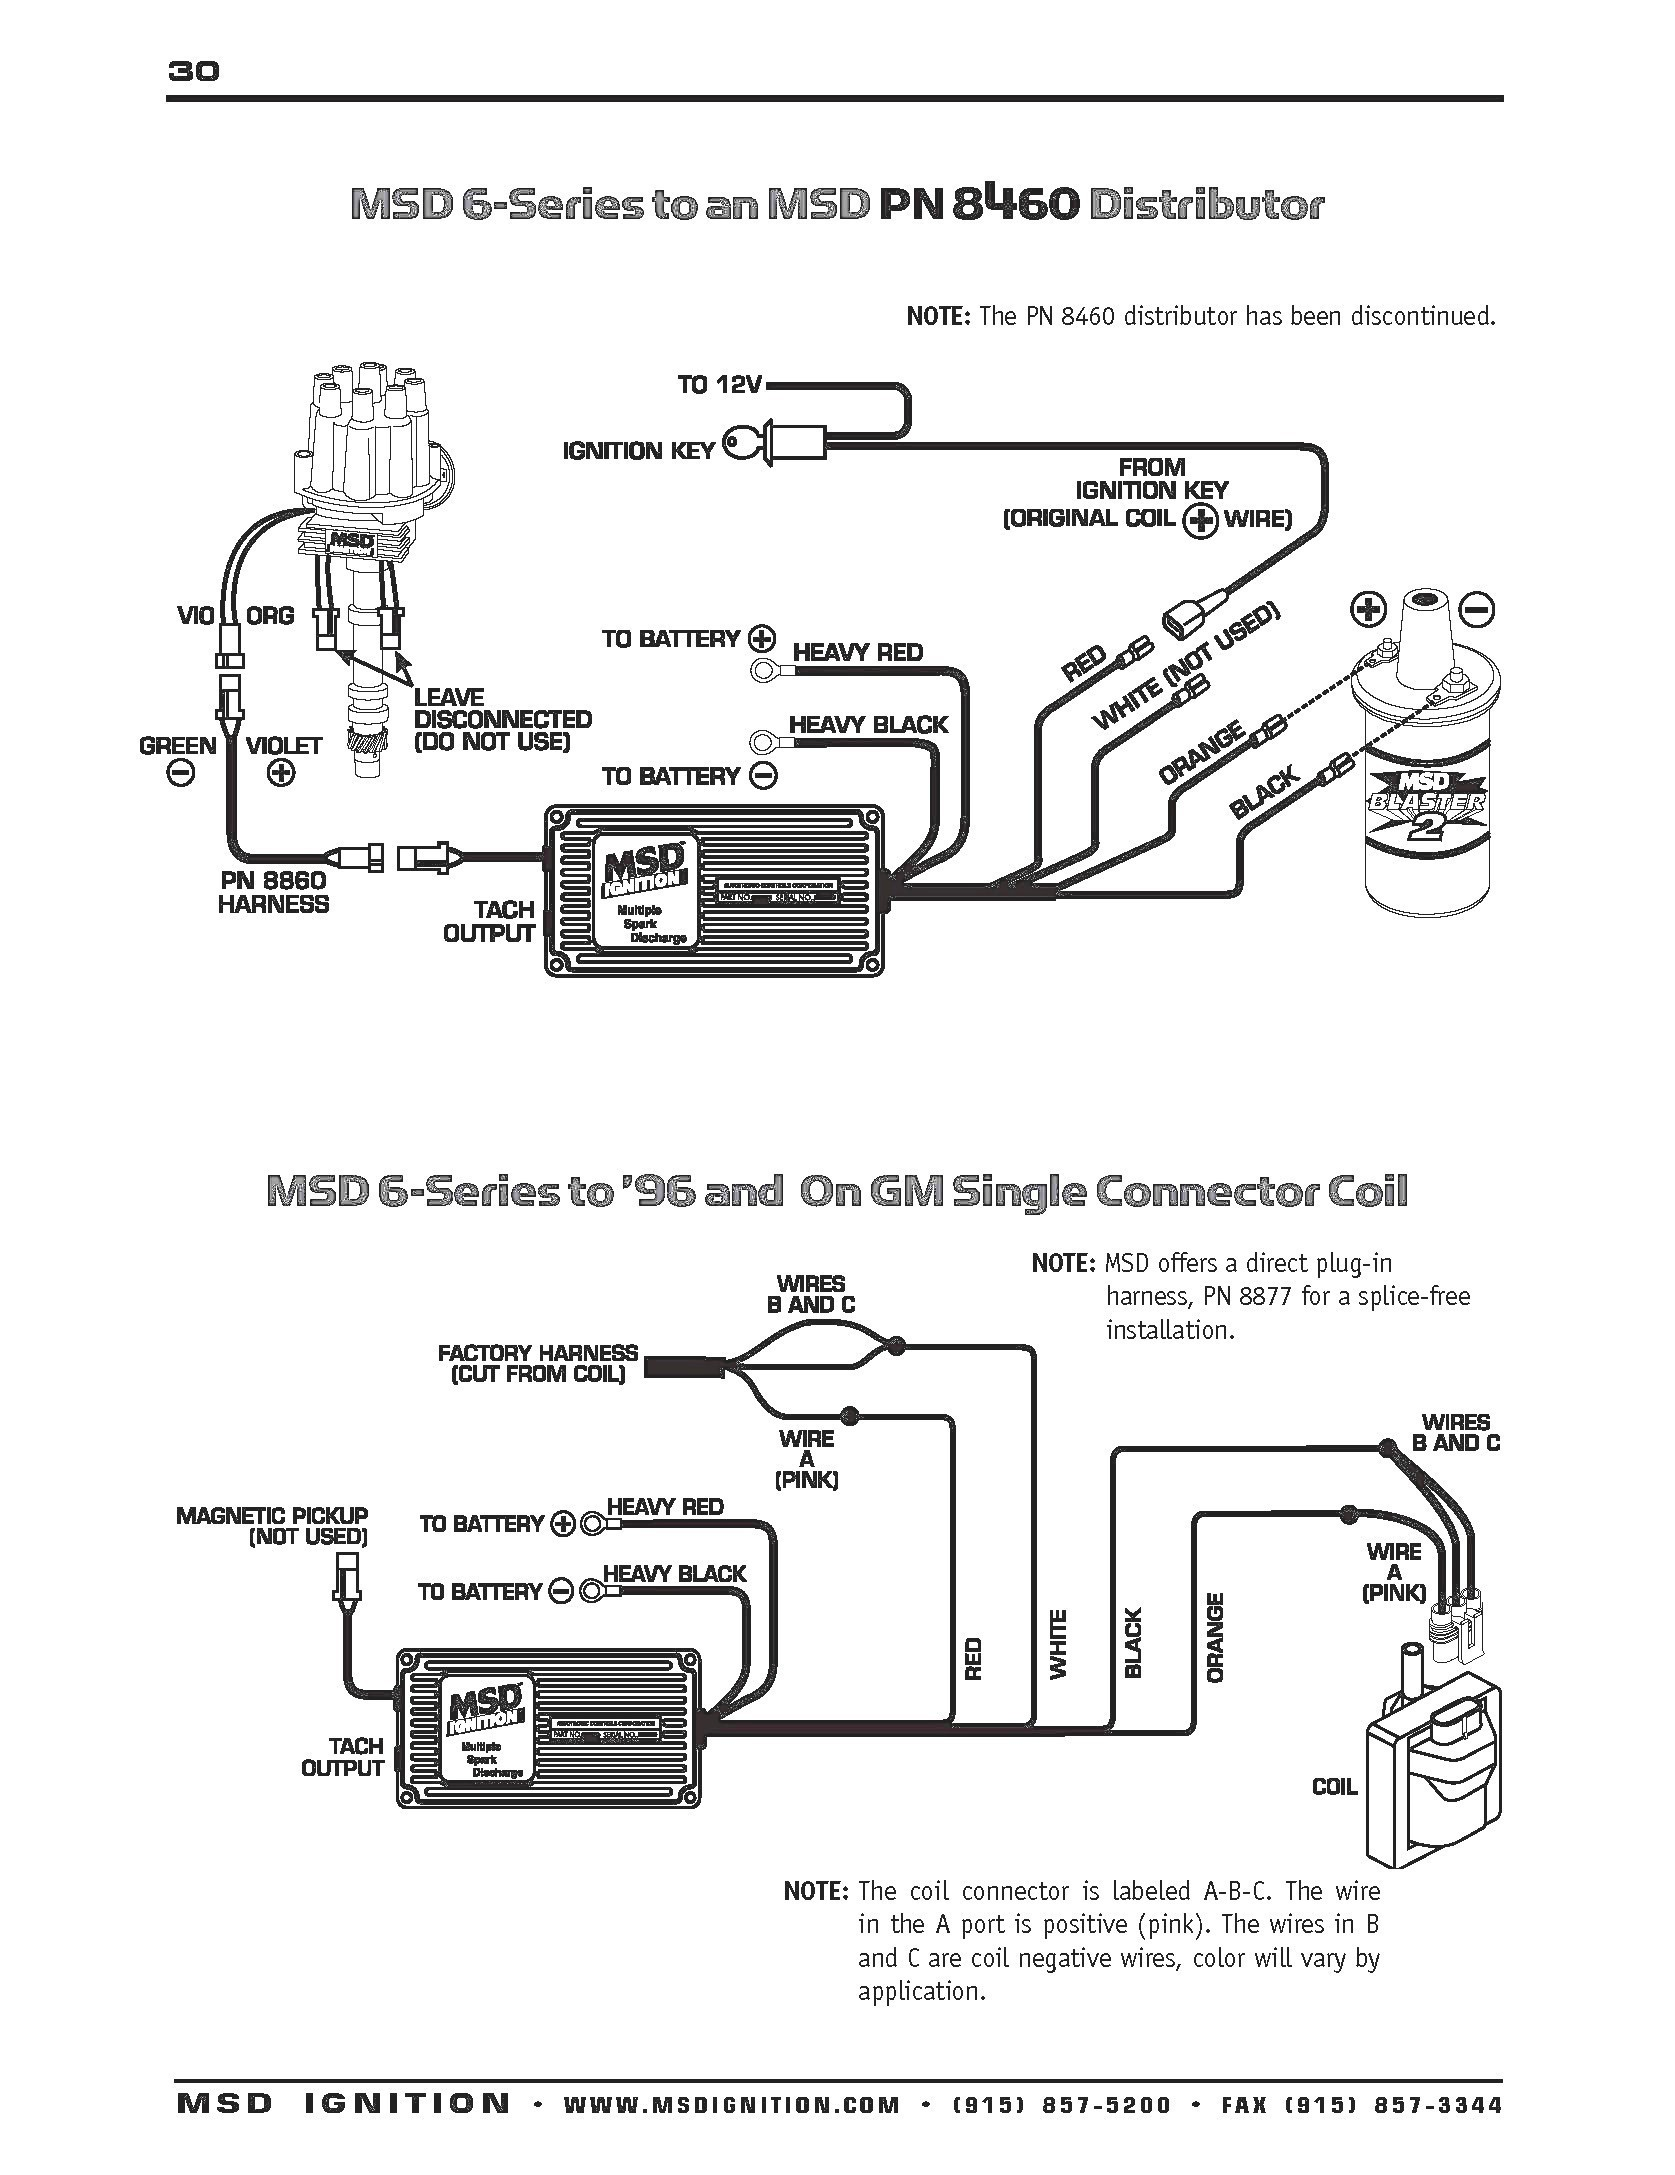 Wiring Diagram On Spy 5000m Wiring Diagram Kawasaki Klr 650 Wiring